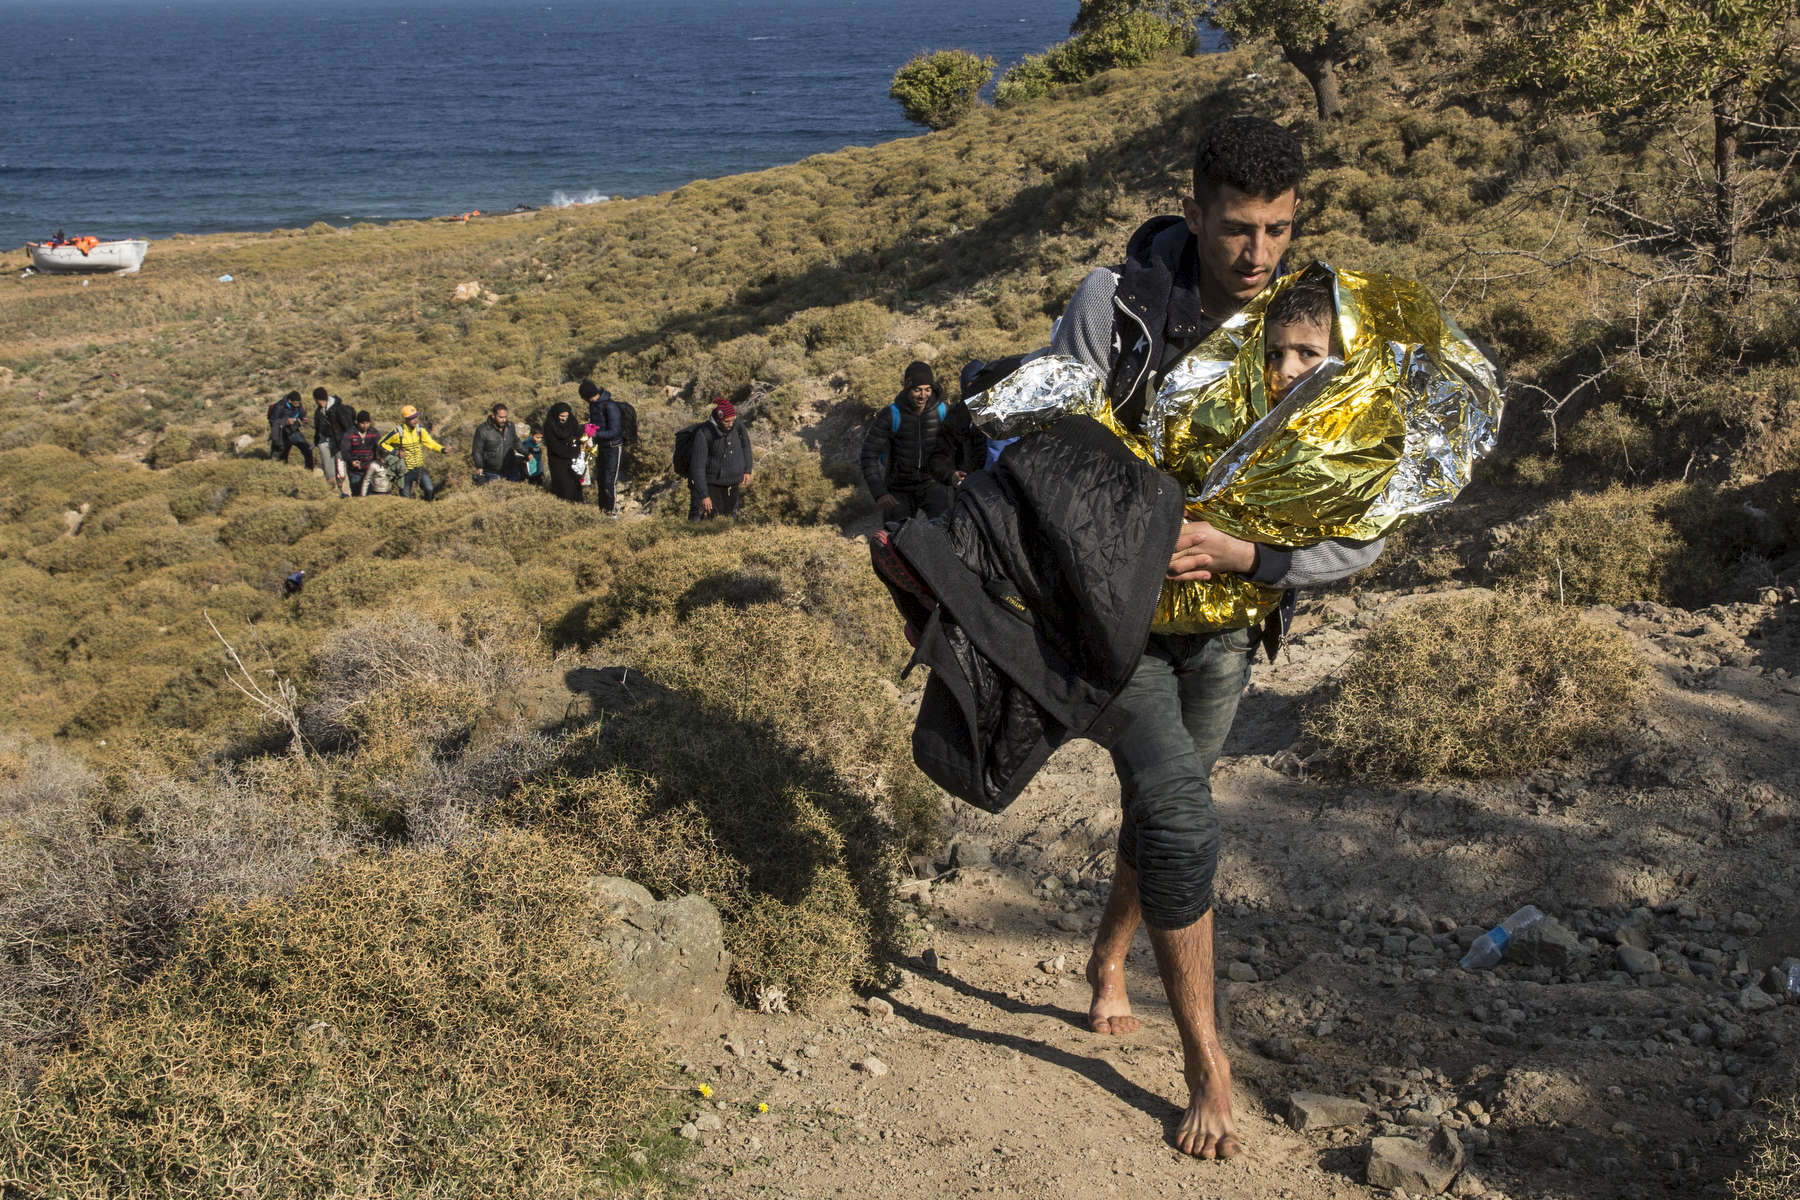 LESBOS, GREECE - NOVEMBER 15: A man carries his child walking barefoot up a hill to a main road after arriving by boat to Lesbos. According to the IOM, an estimated 100,000 people landed in Greece, an average of almost 4,500 per day in late October and November. Nearly all of those entering Greece on a boat from Turkey are from the war zones of Syria, Iraq and Afghanistan. (Photo by Paula Bronstein)